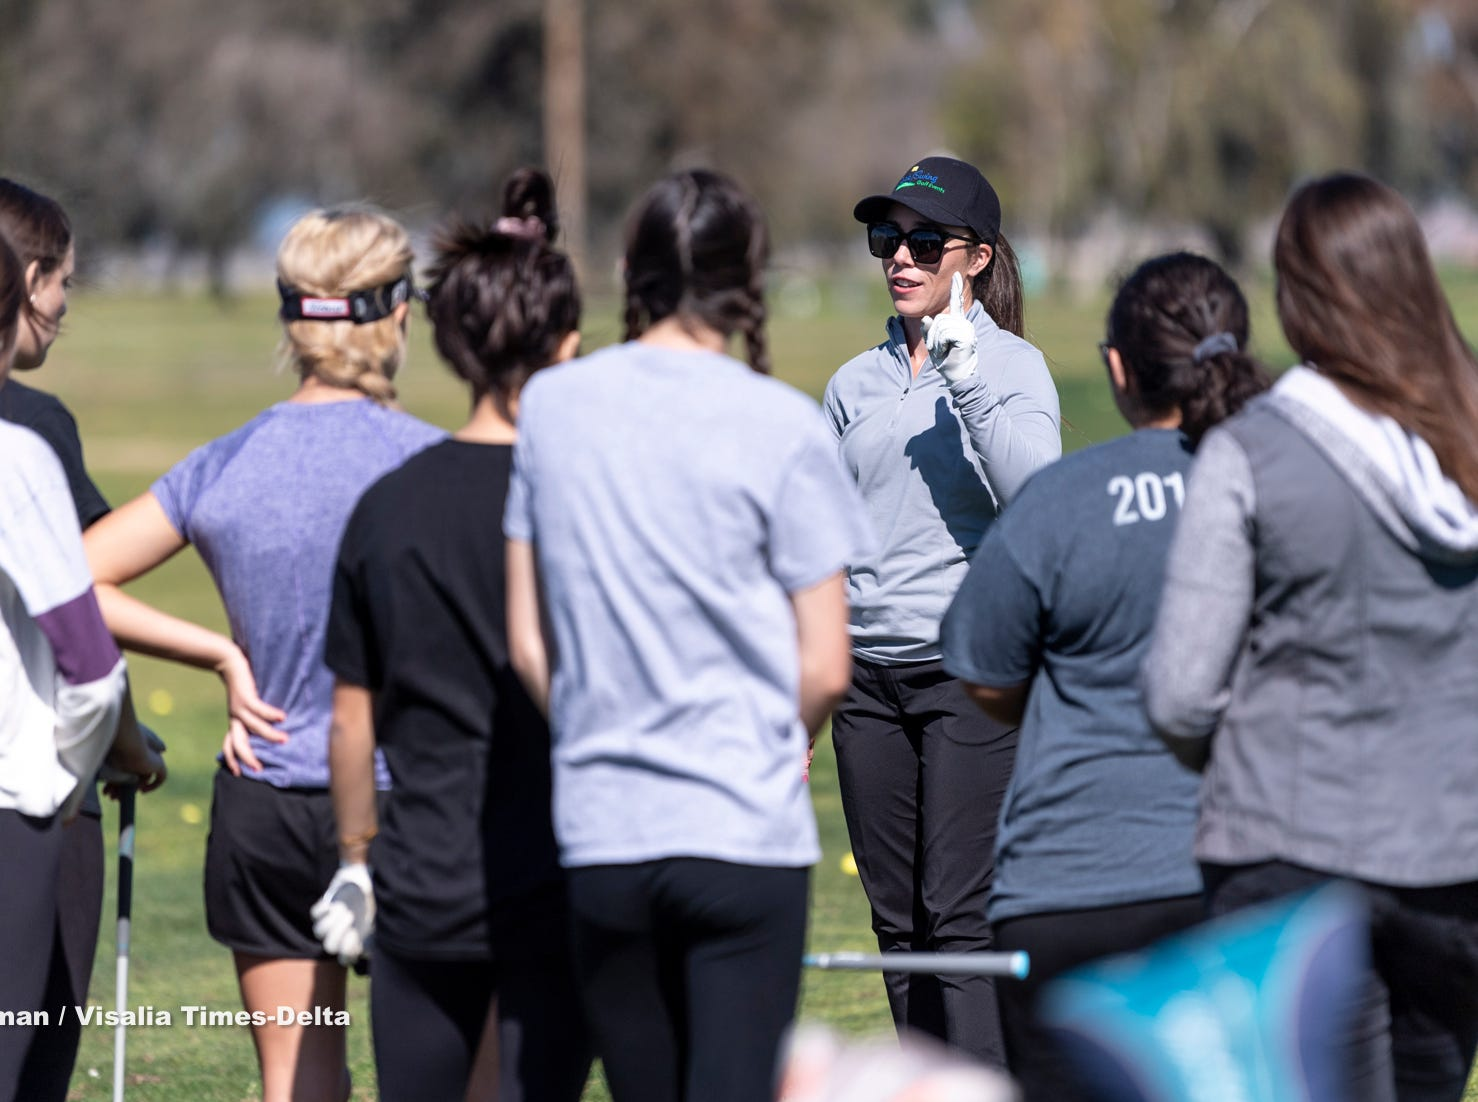 Touring golf professional and instructor Amanda Robertson from Backswing Golf Events works with high school golfers on Thursday, February 28, 2019. Organizers held the free event at the Tulare Golf Course to help grow the game of golf in the Central Valley.